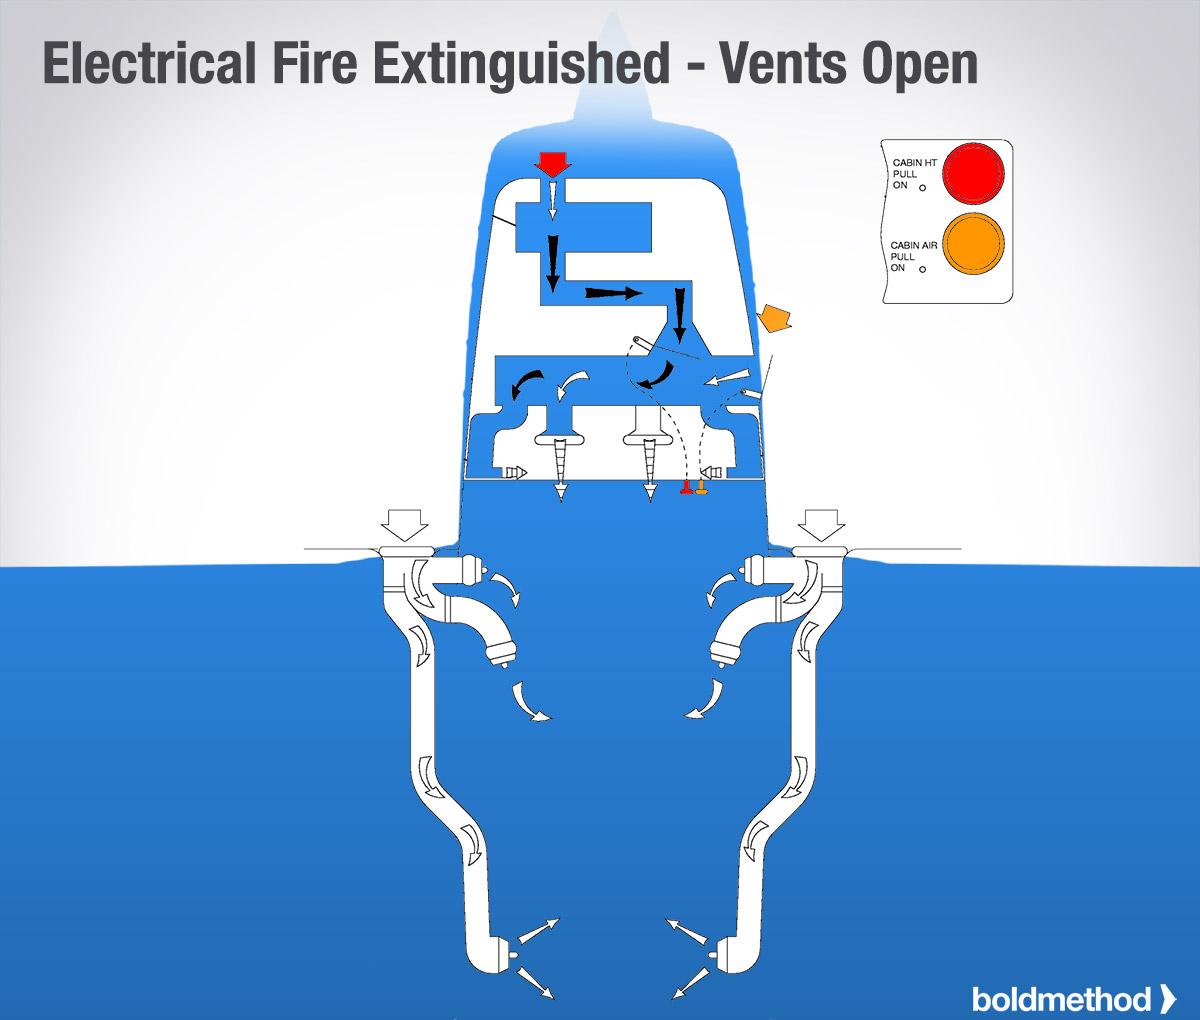 Electrical Fire Extinguished